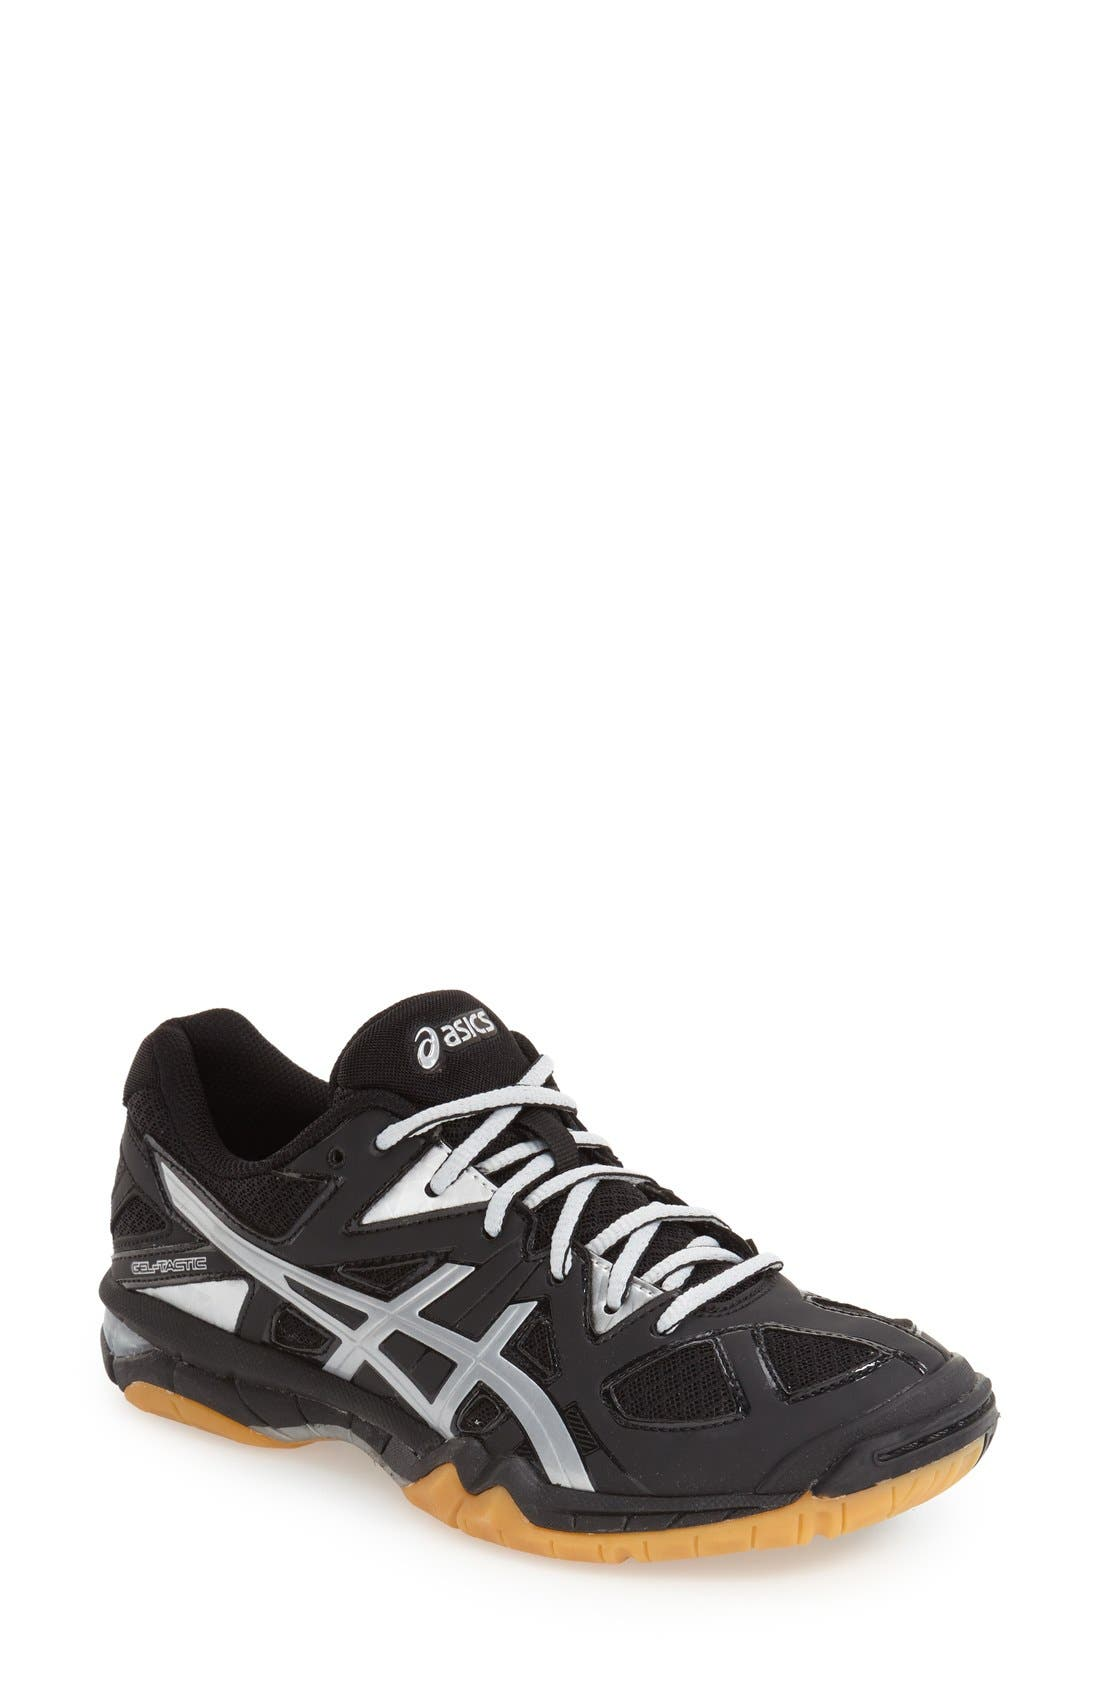 Alternate Image 1 Selected - ASICS® 'GEL-Tactic' Volleyball Shoe (Women)